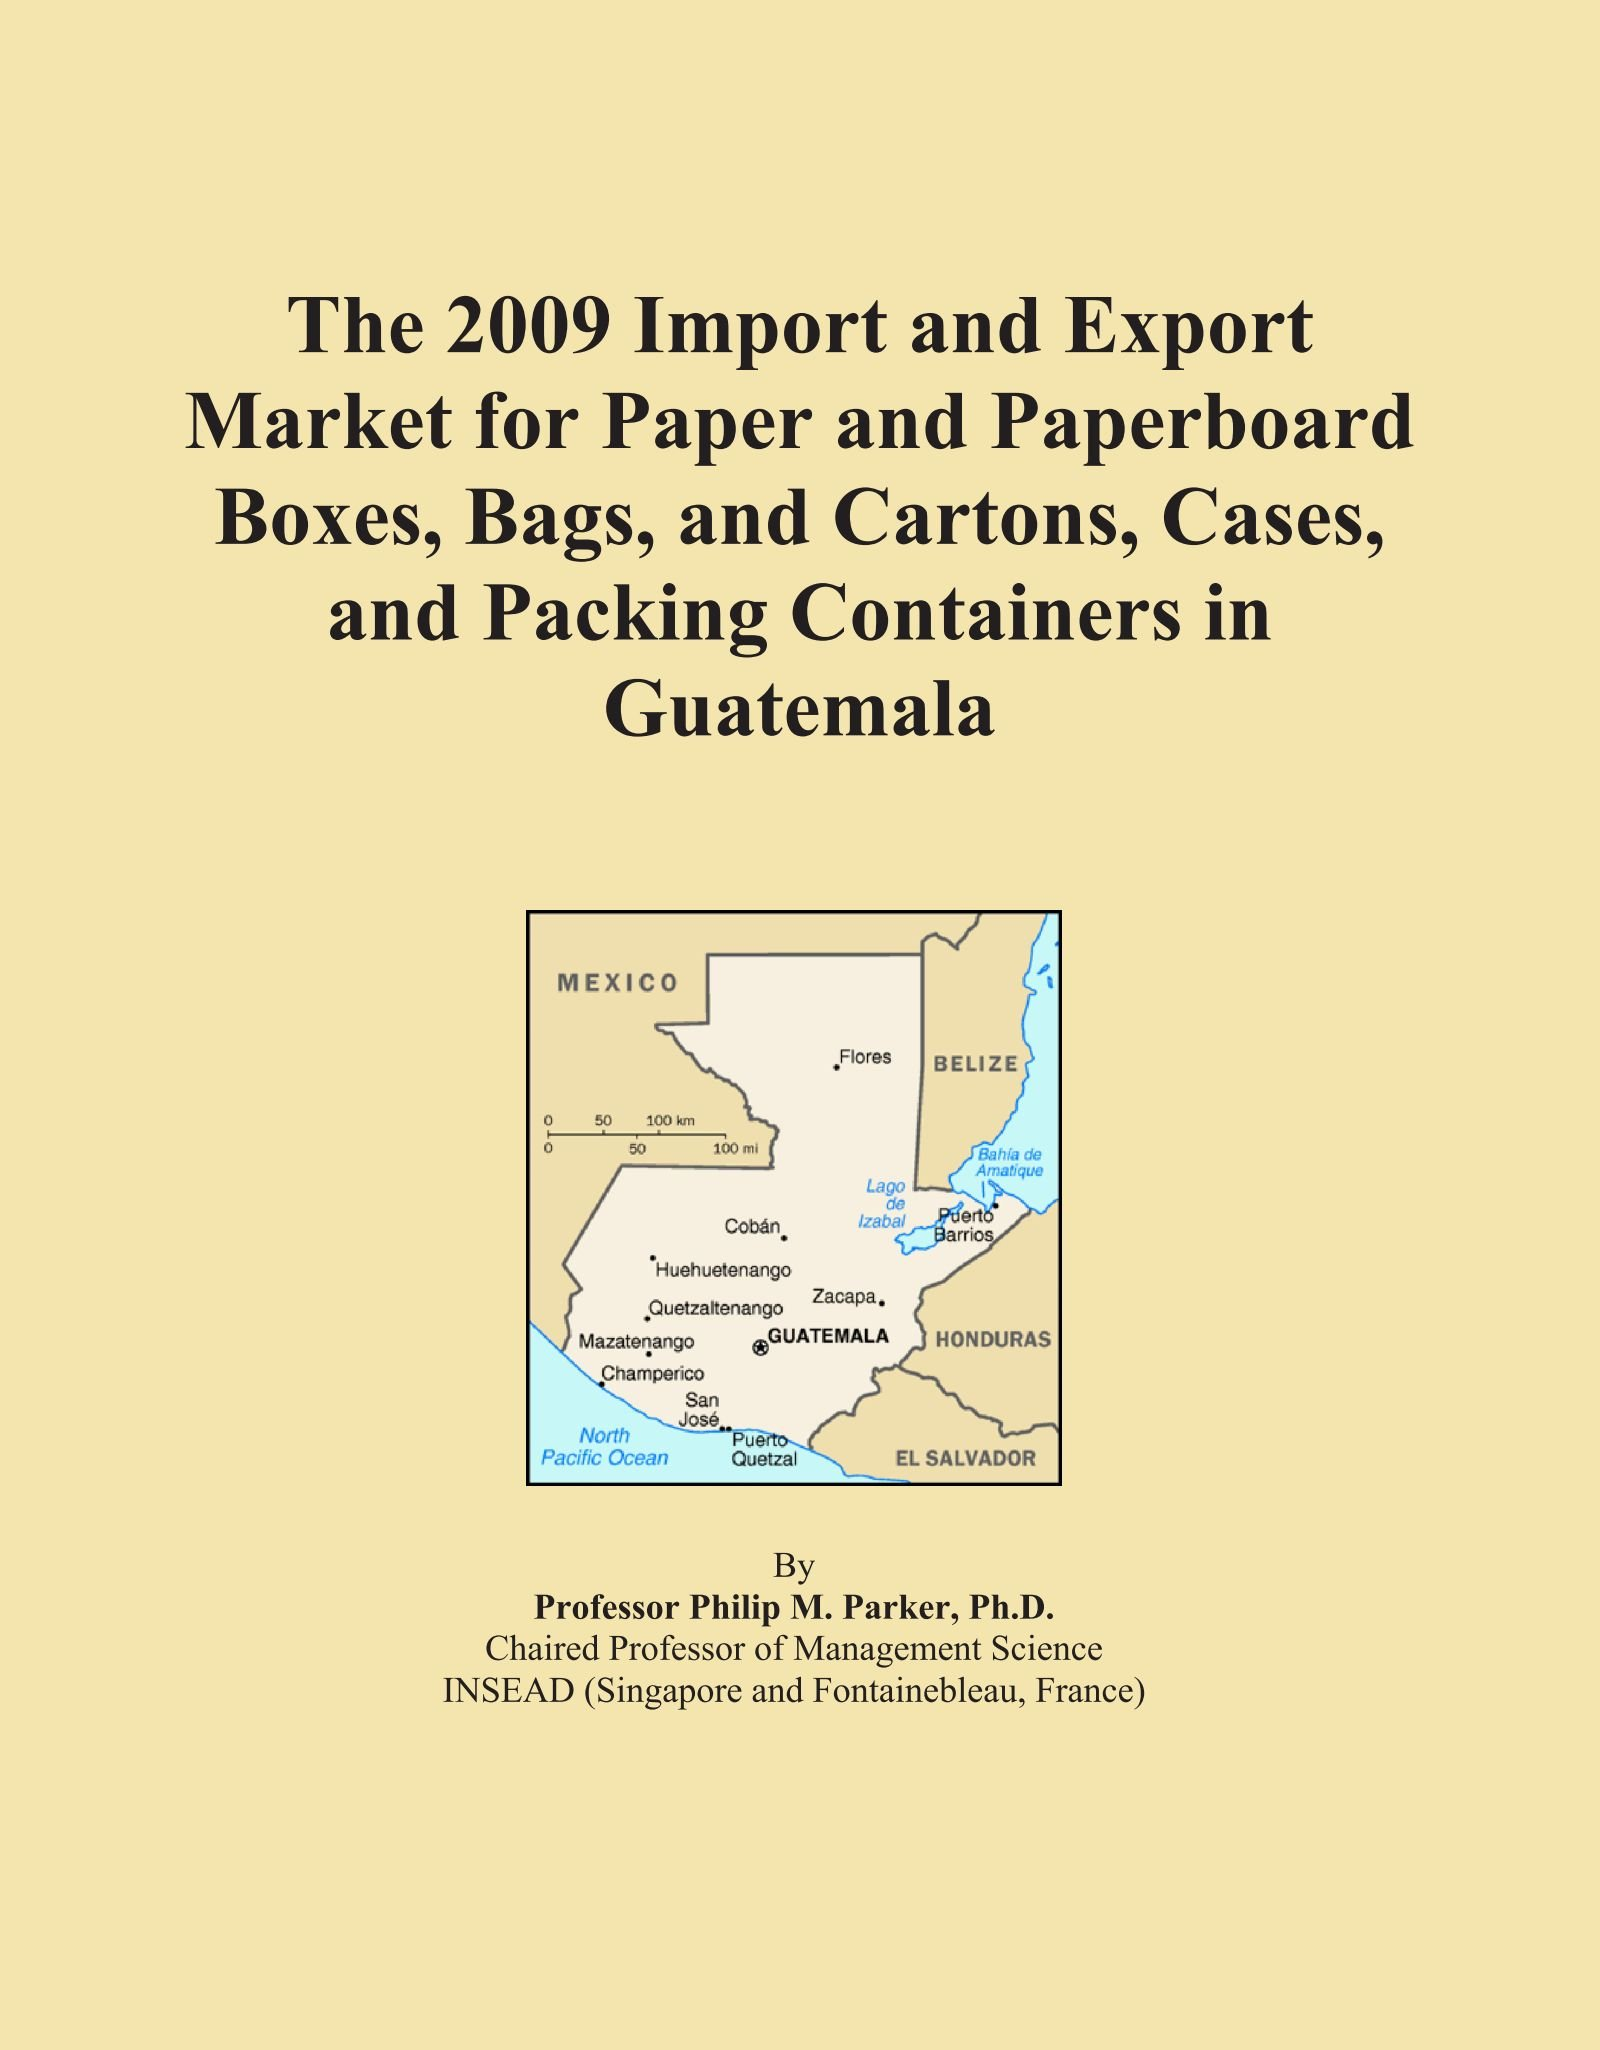 Download The 2009 Import and Export Market for Paper and Paperboard Boxes, Bags, and Cartons, Cases, and Packing Containers in Guatemala PDF